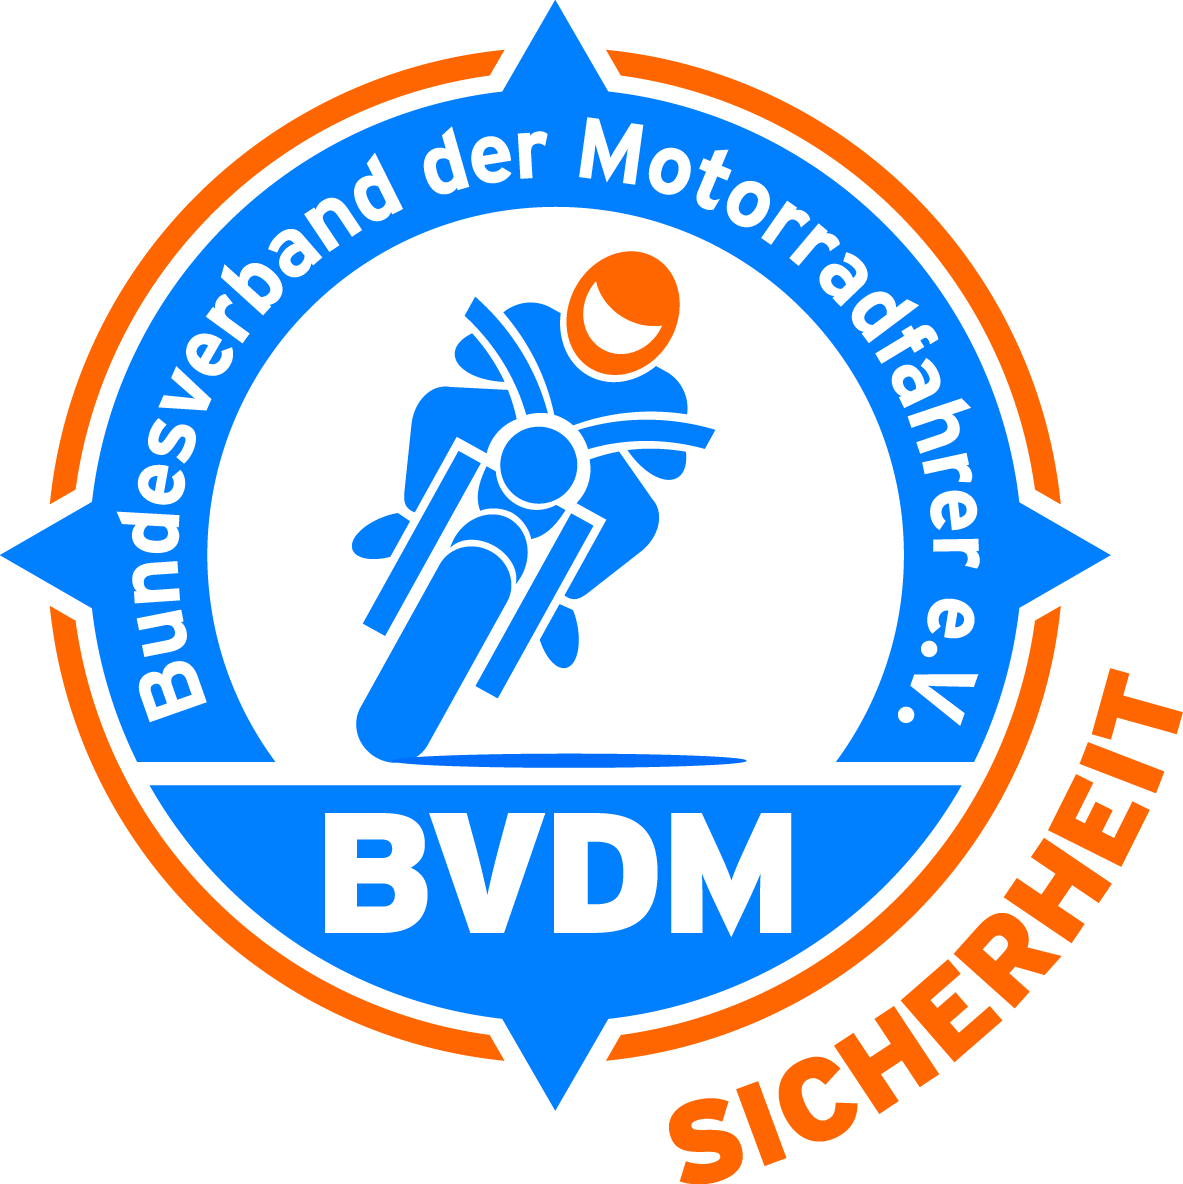 Logo_BVDM_SICHERHEIT_orange